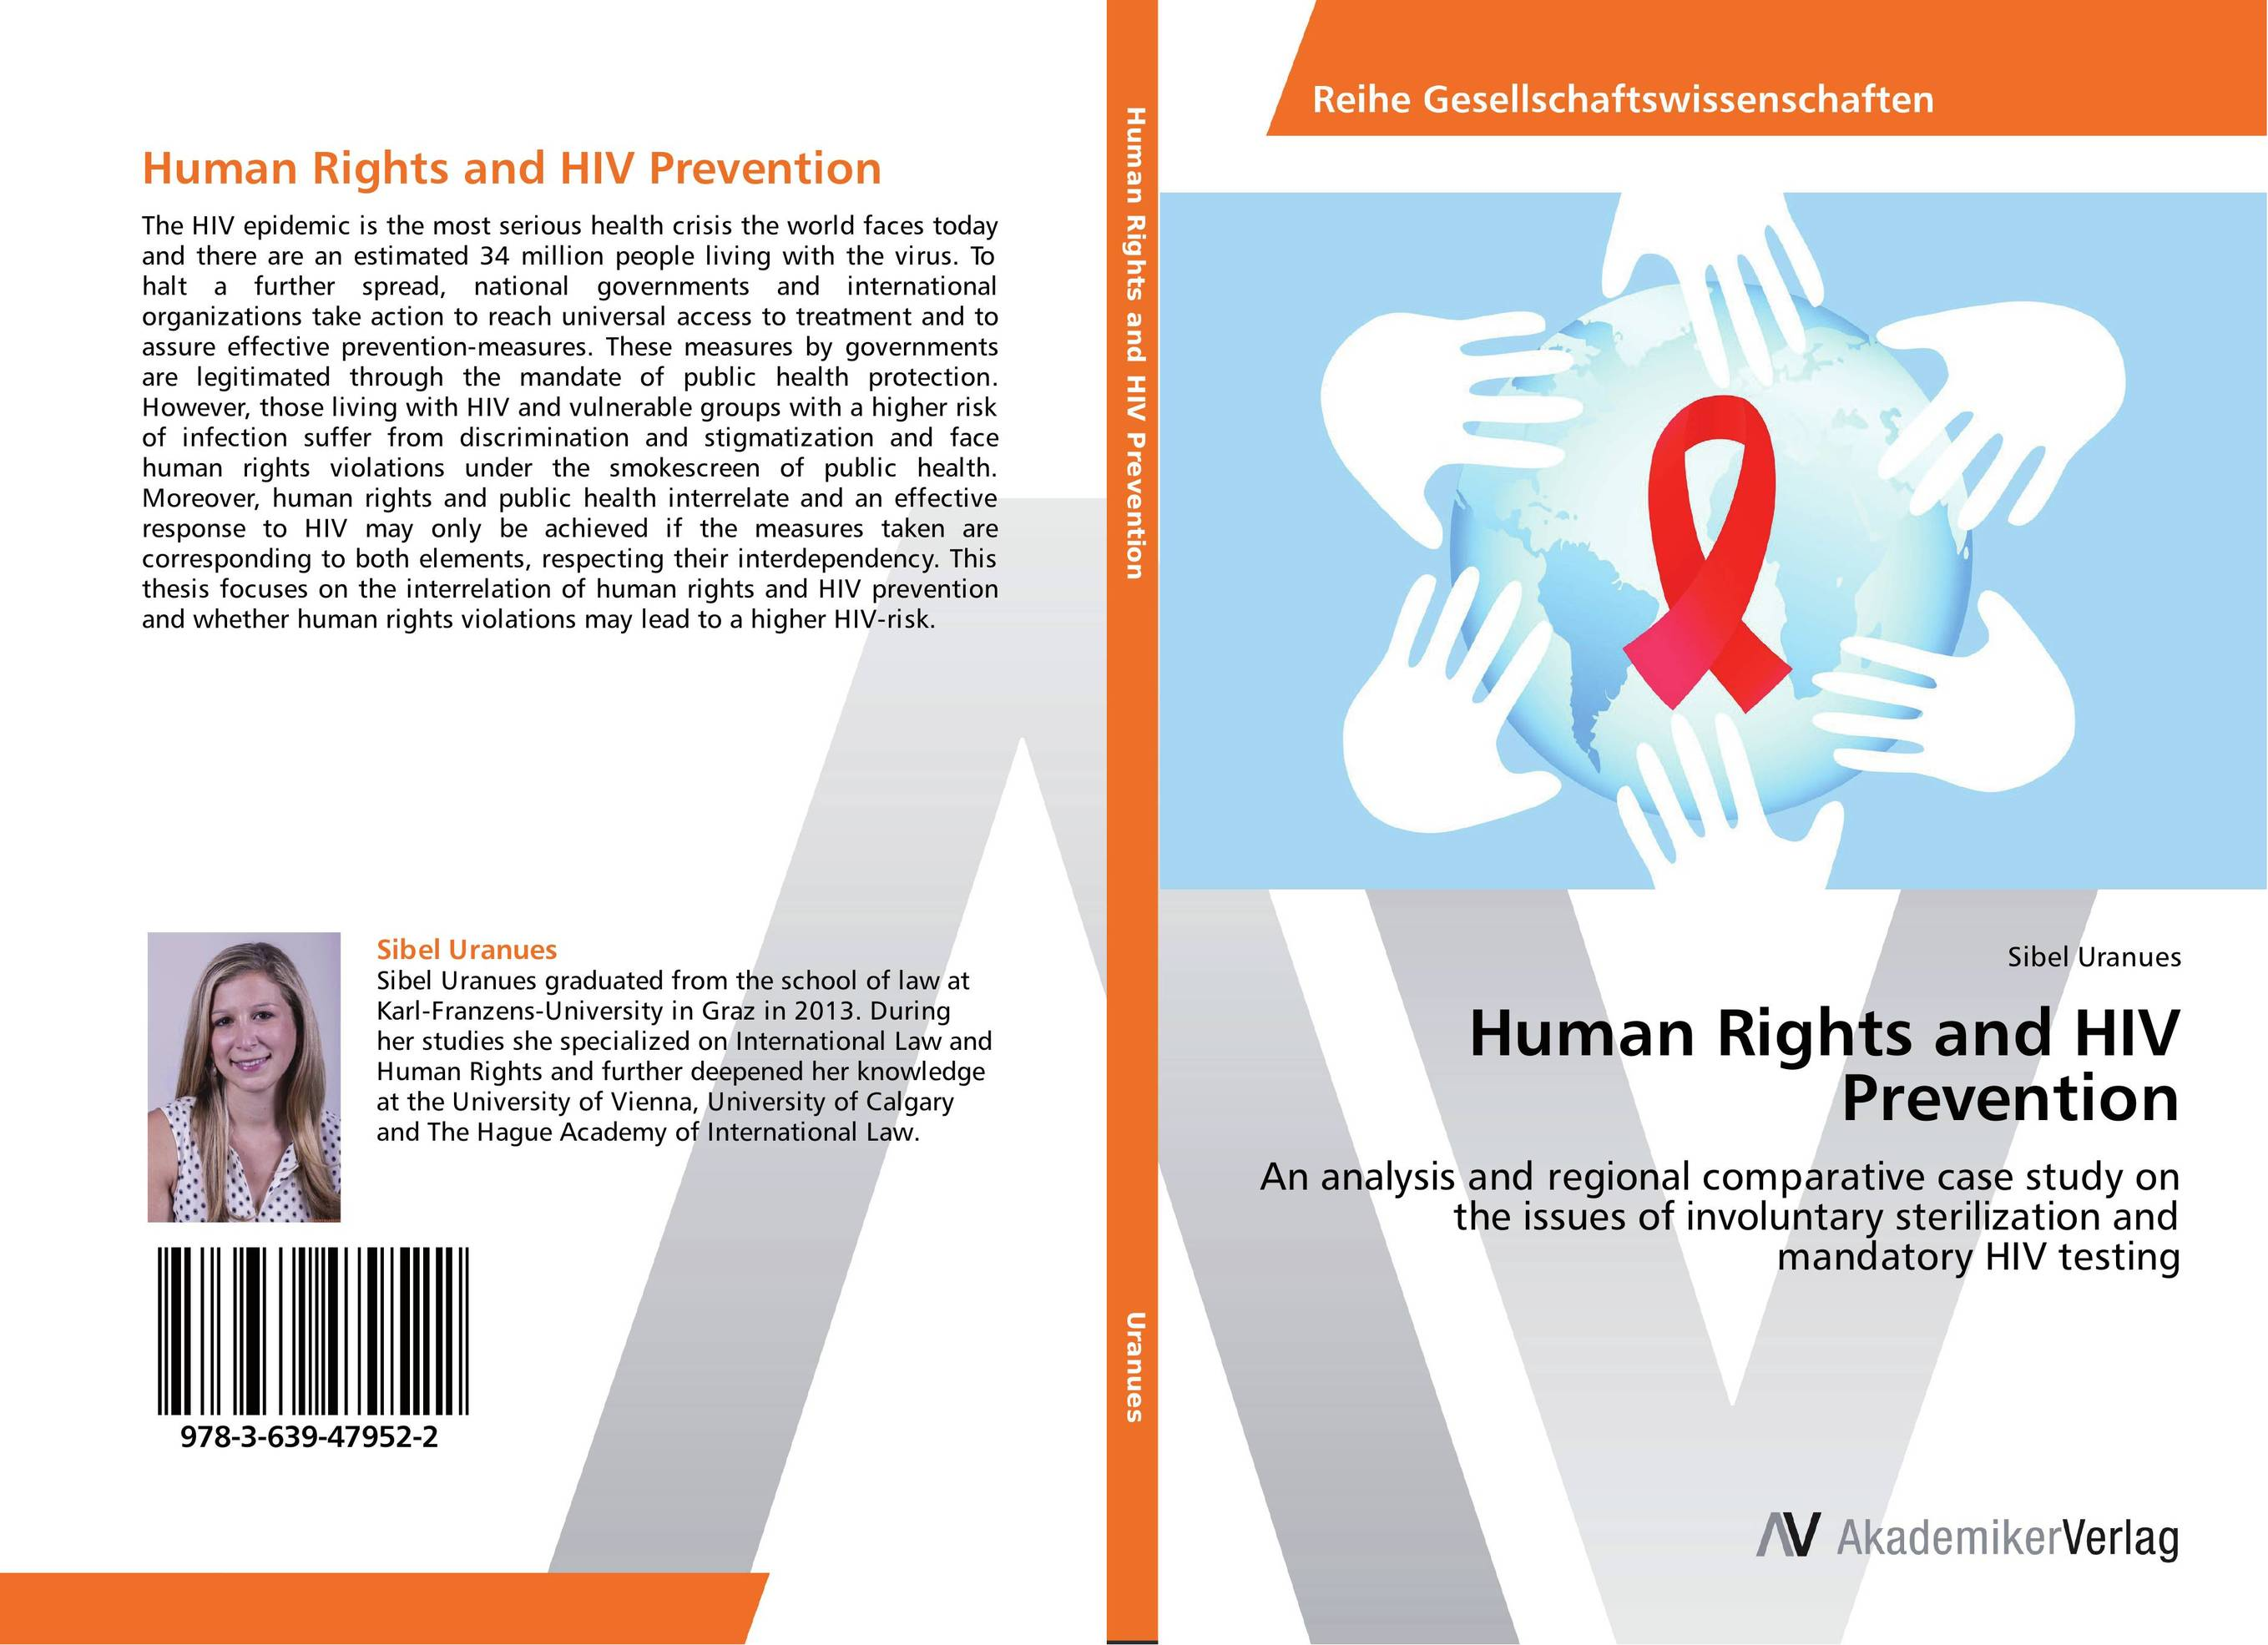 Human Rights and HIV Prevention